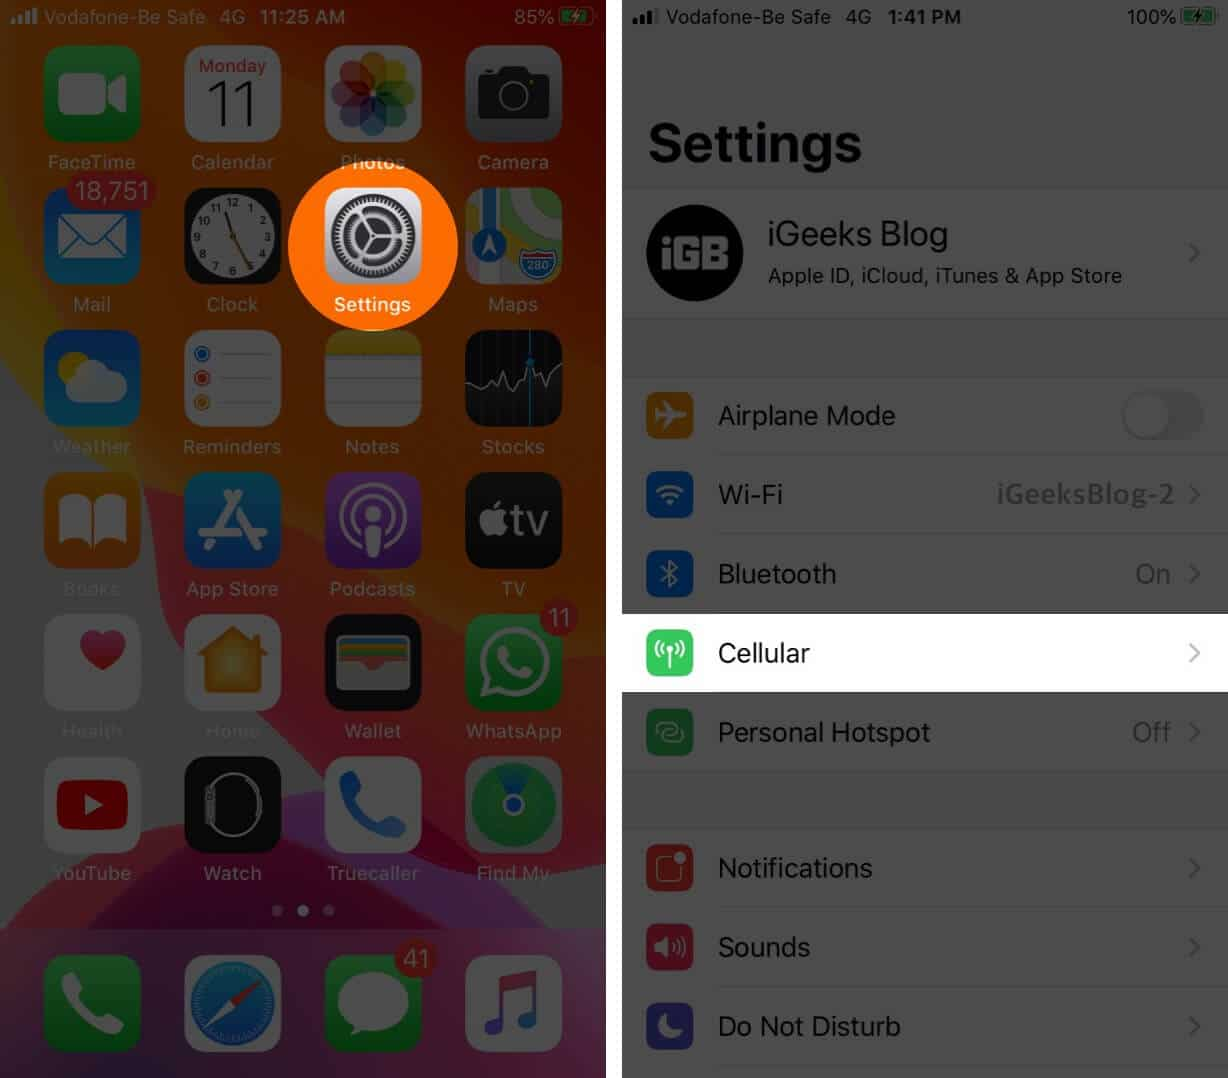 Open Settings and Tap on Cellular